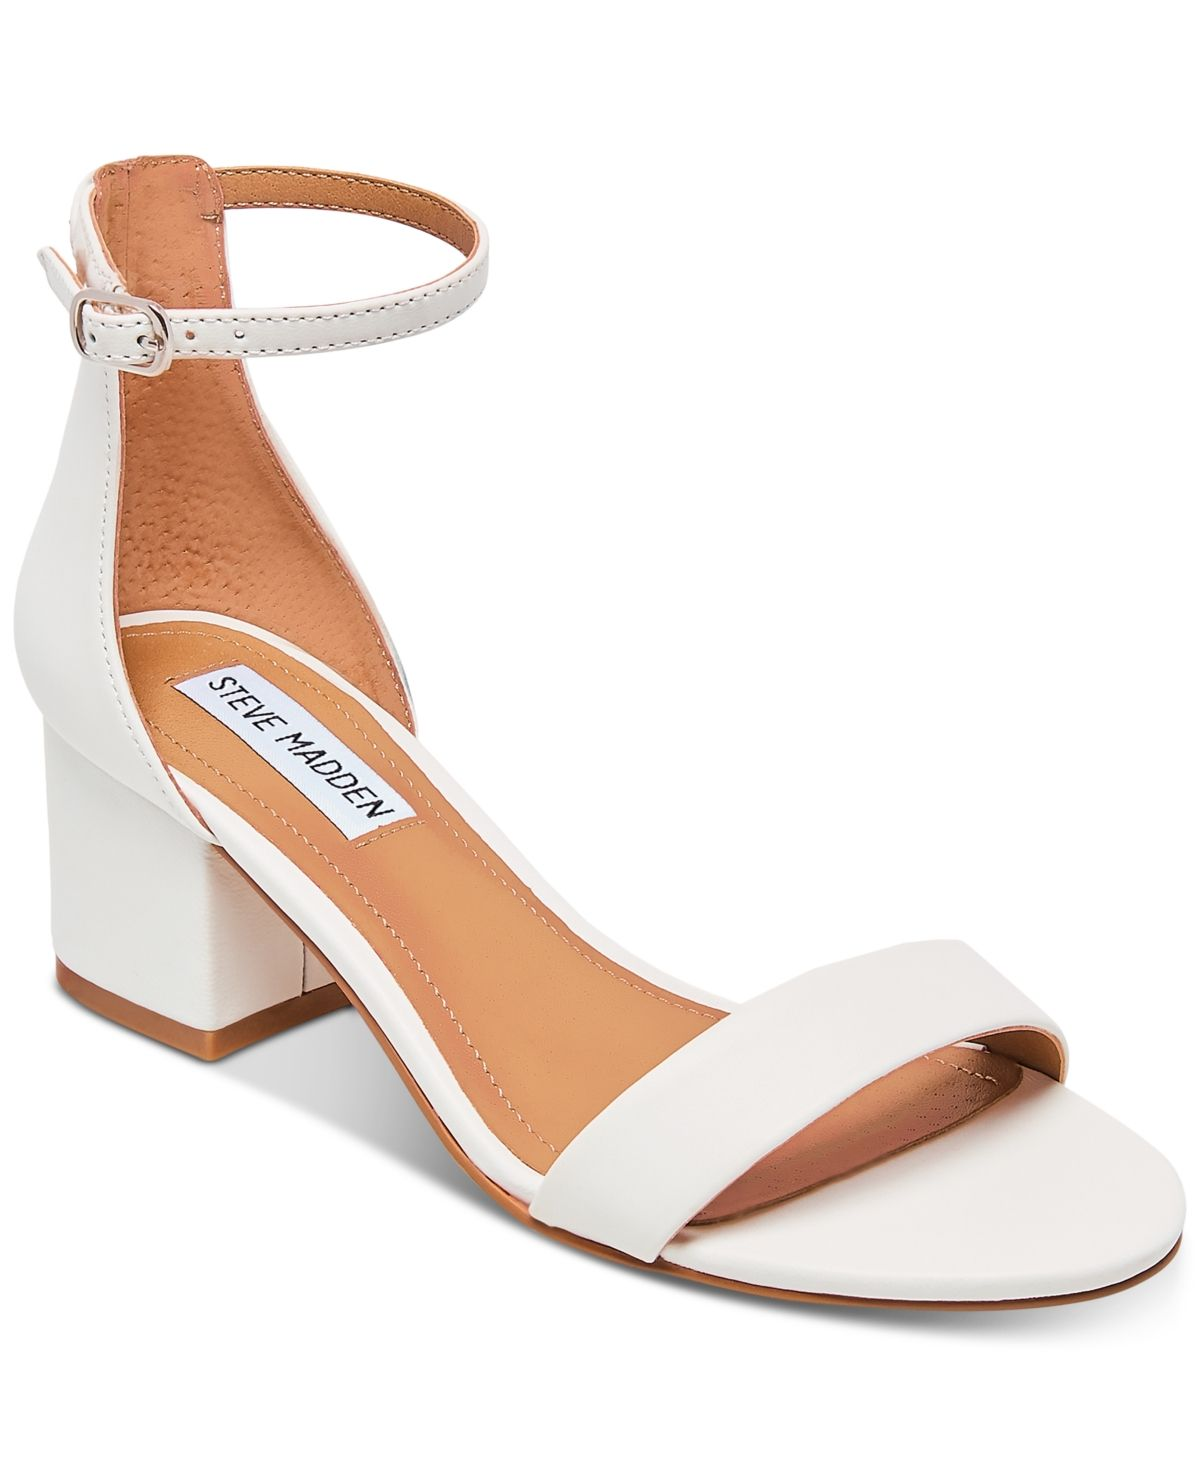 Steve Madden Women's Irenee Block Heel Sandals White